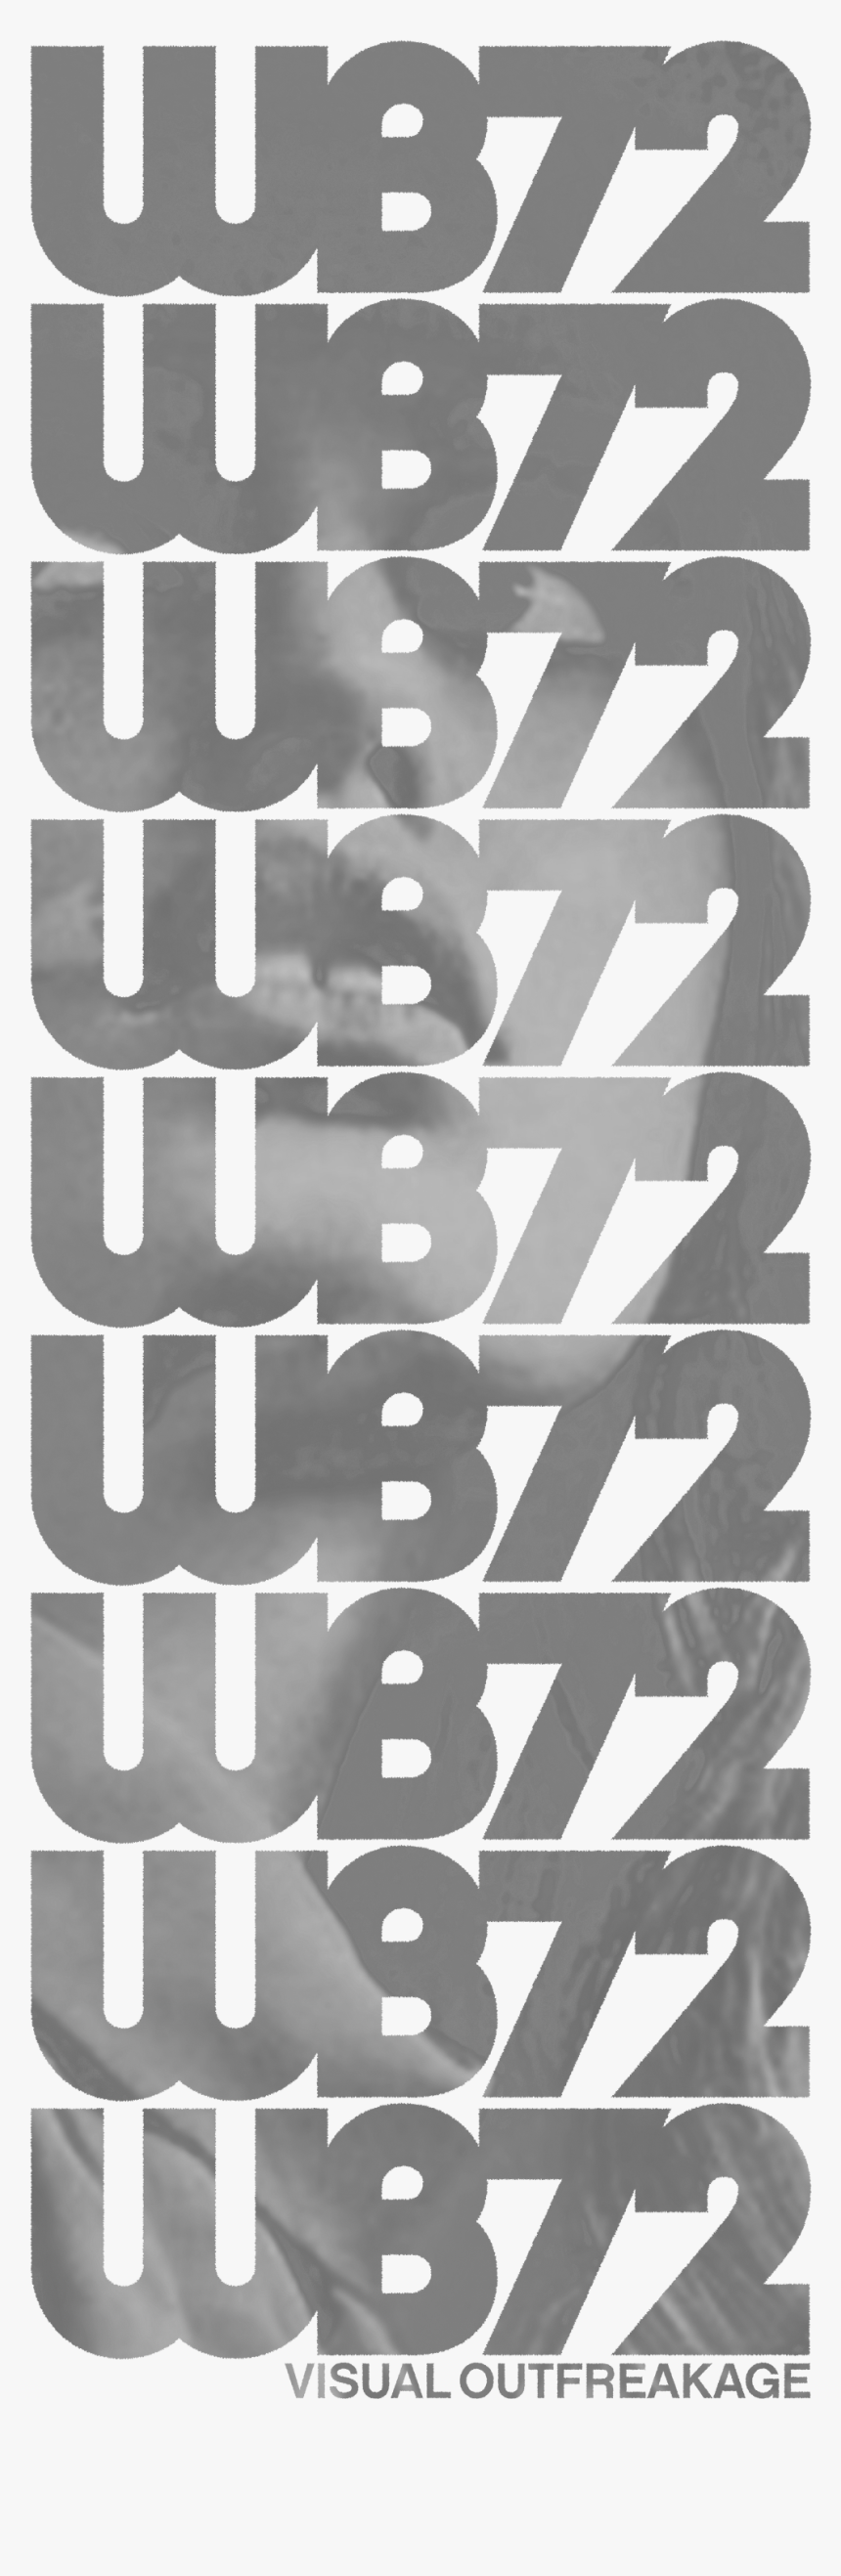 Wb72 - Poster, HD Png Download, Free Download